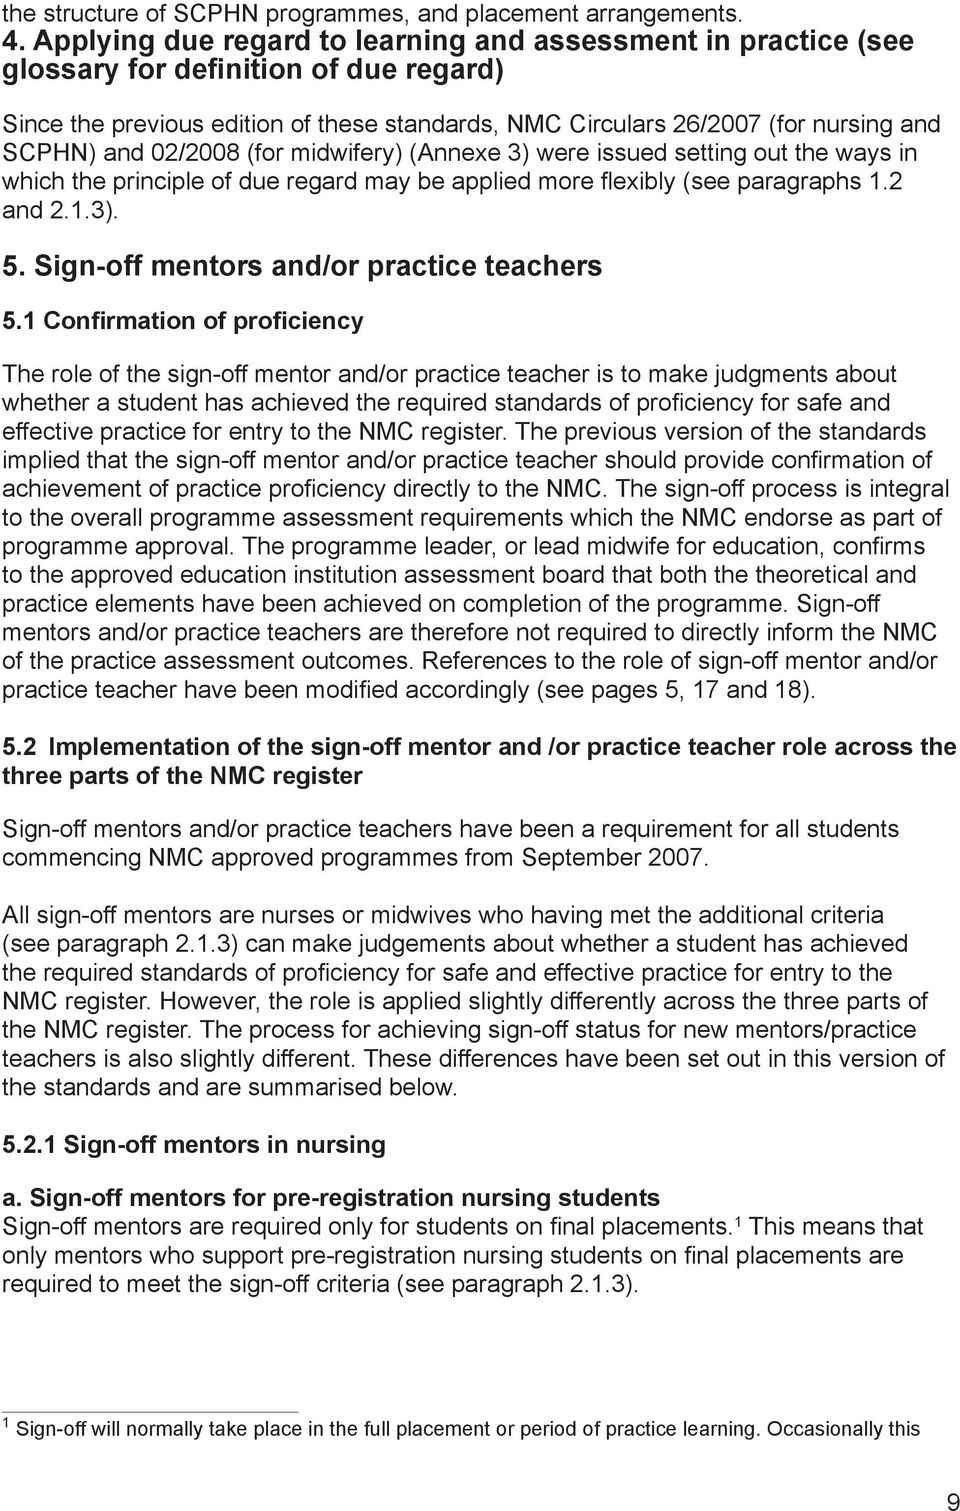 02/2008 (for midwifery) (Annexe 3) were issued setting out the ways in which the principle of due regard may be applied more flexibly (see paragraphs 1.2 and 2.1.3). 5.